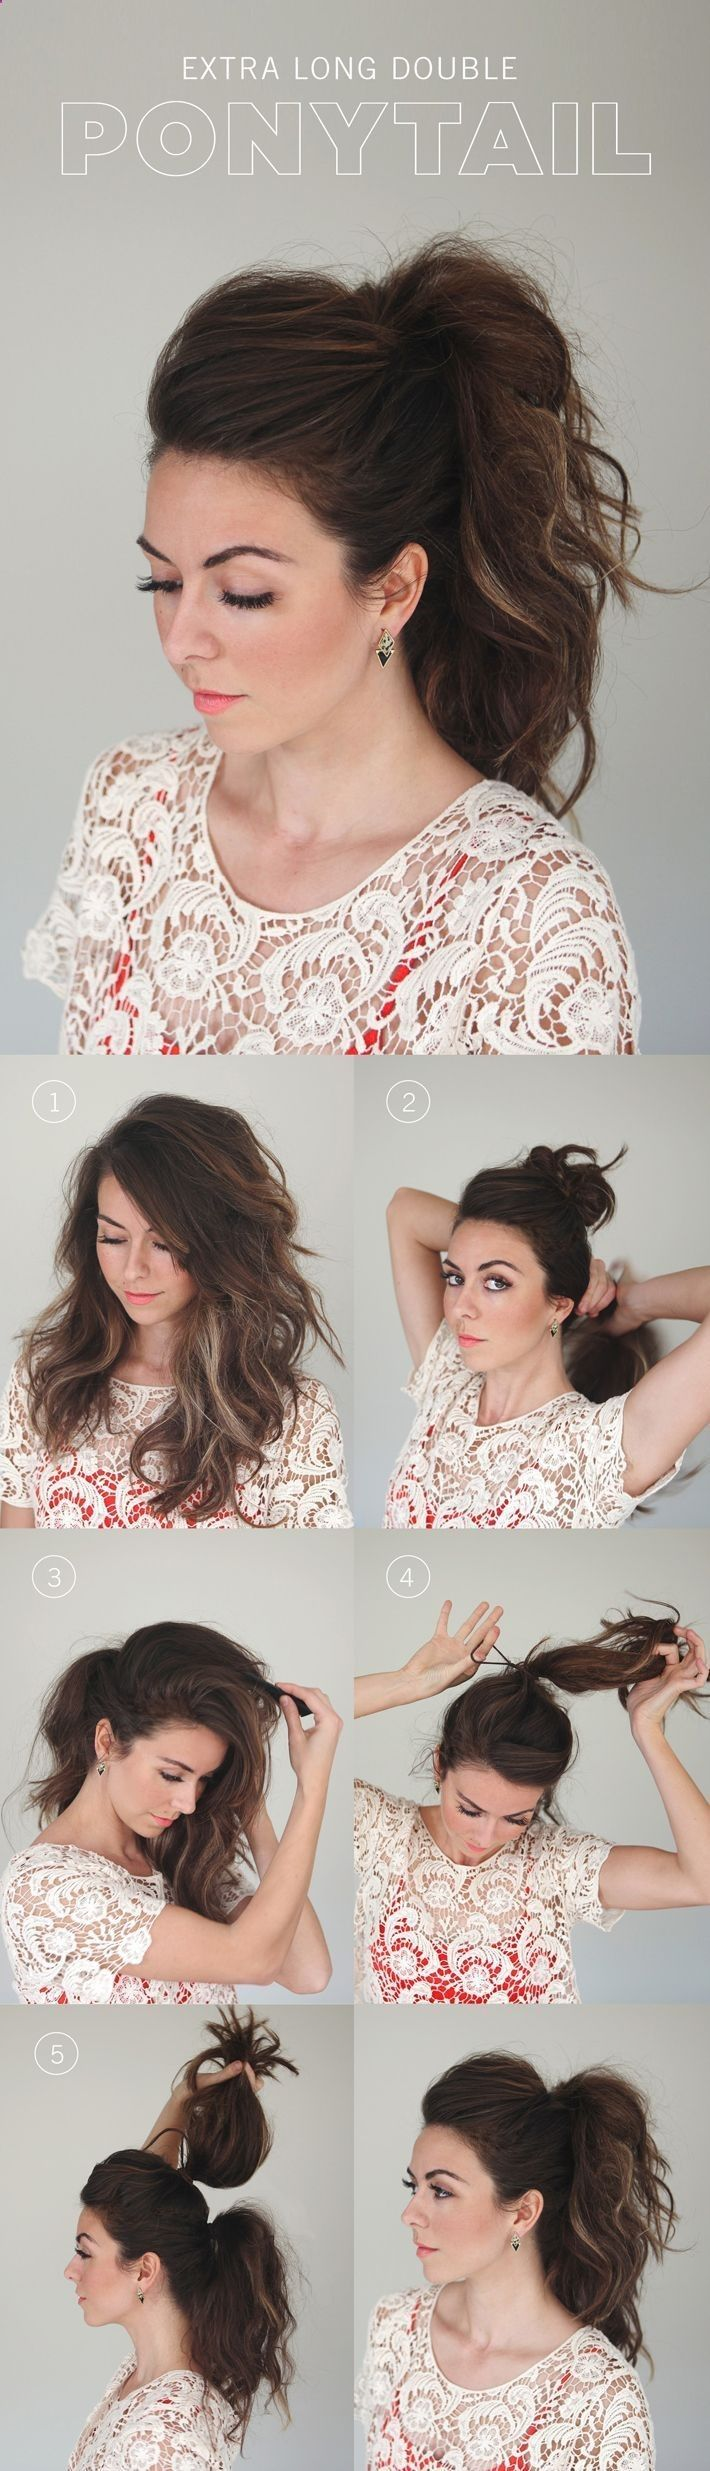 best images about dlm hair book on pinterest updo hair down